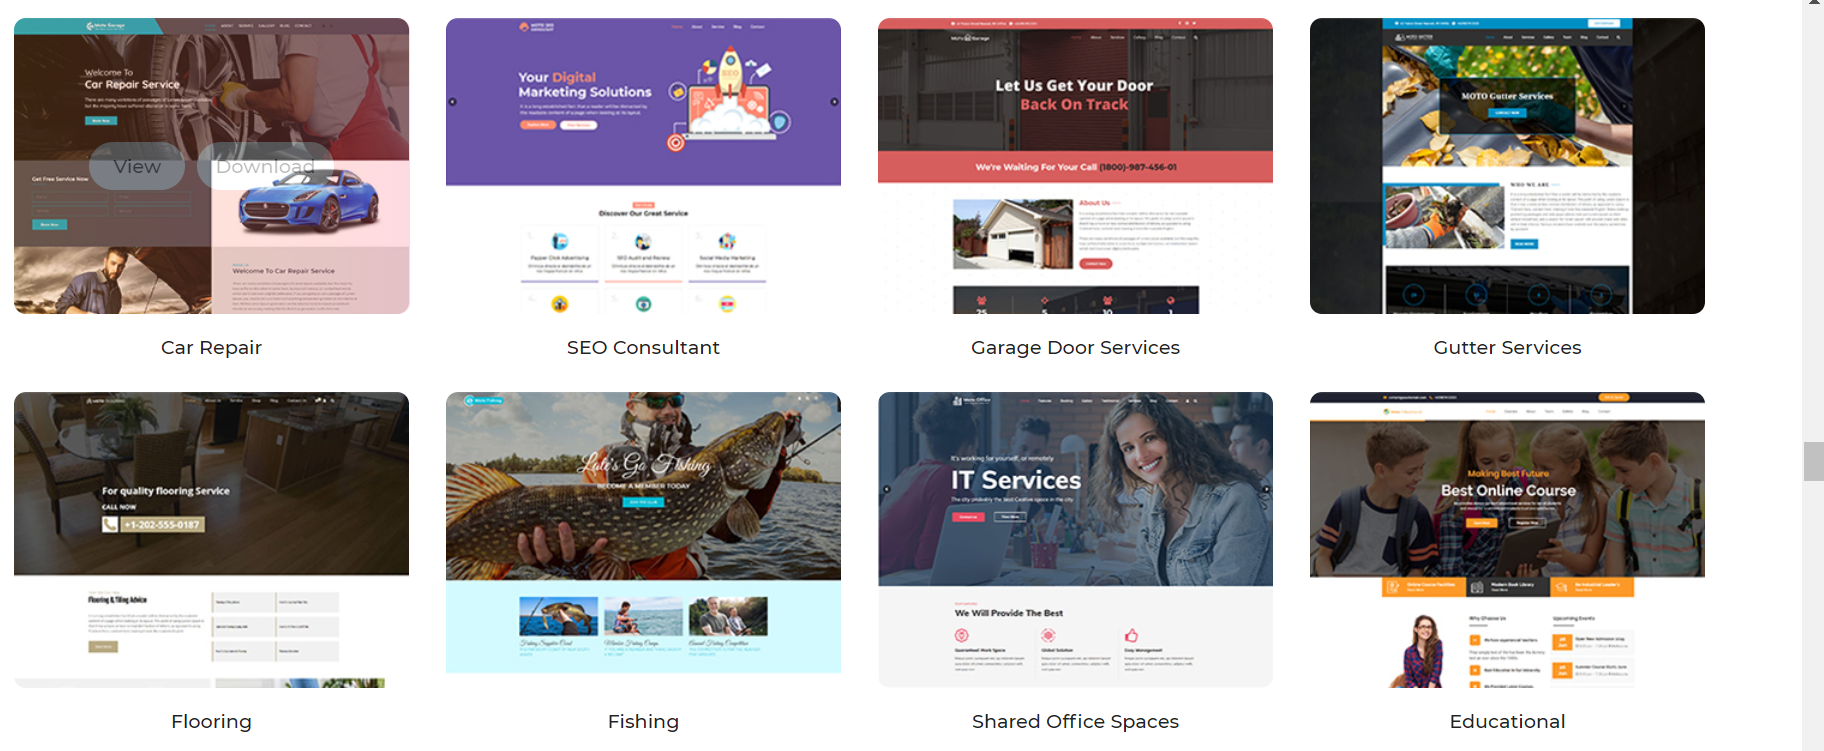 PRODUCTS AND SERVICES 4